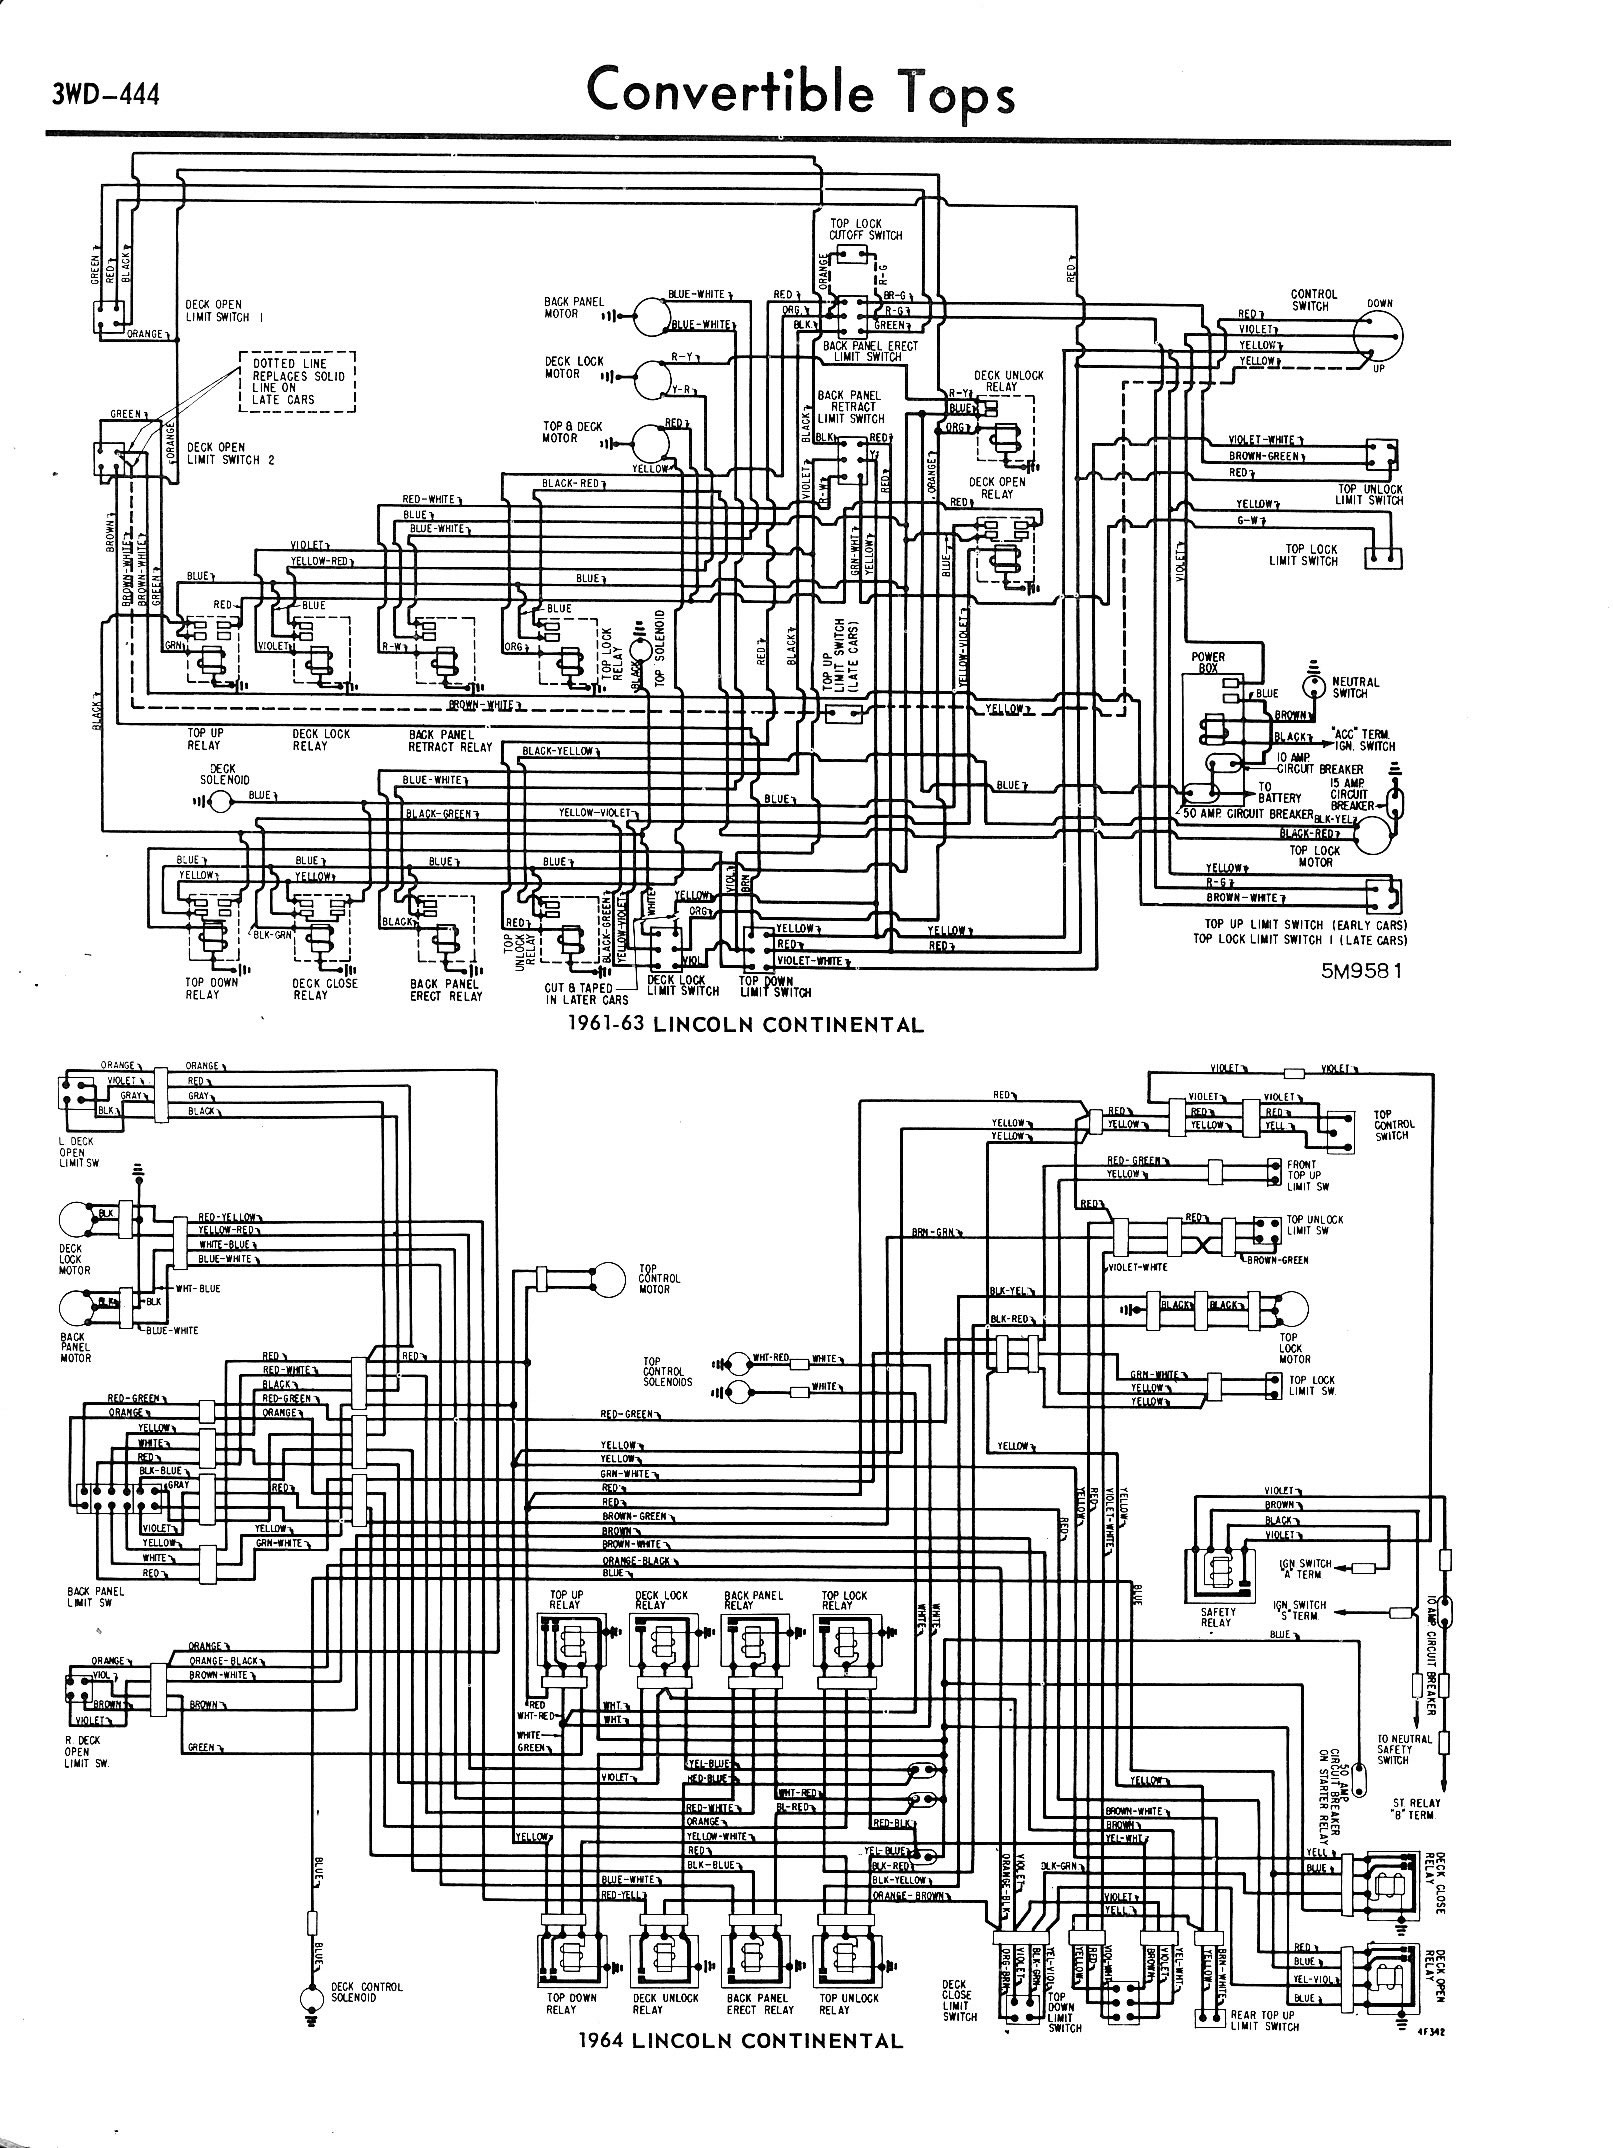 3WD 444_jpg 1961 ford falcon wiring harness ford ranger wiring harness 1964 ford f100 wiring diagram at crackthecode.co